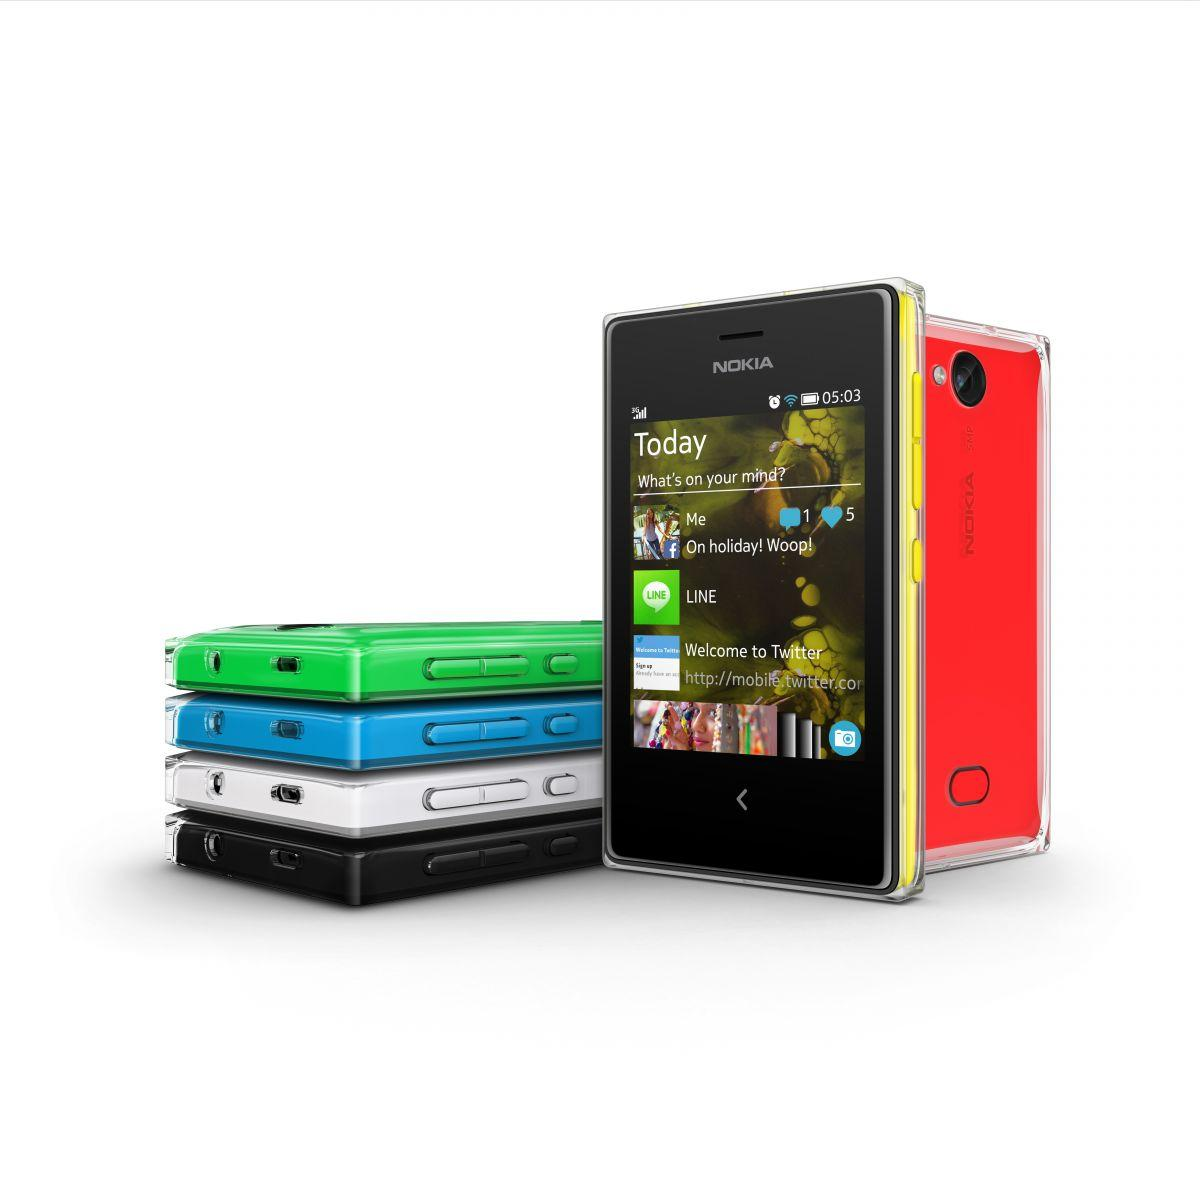 Press Release: Nokia Brings New Innovations To Design & Imaging With Six New Devices